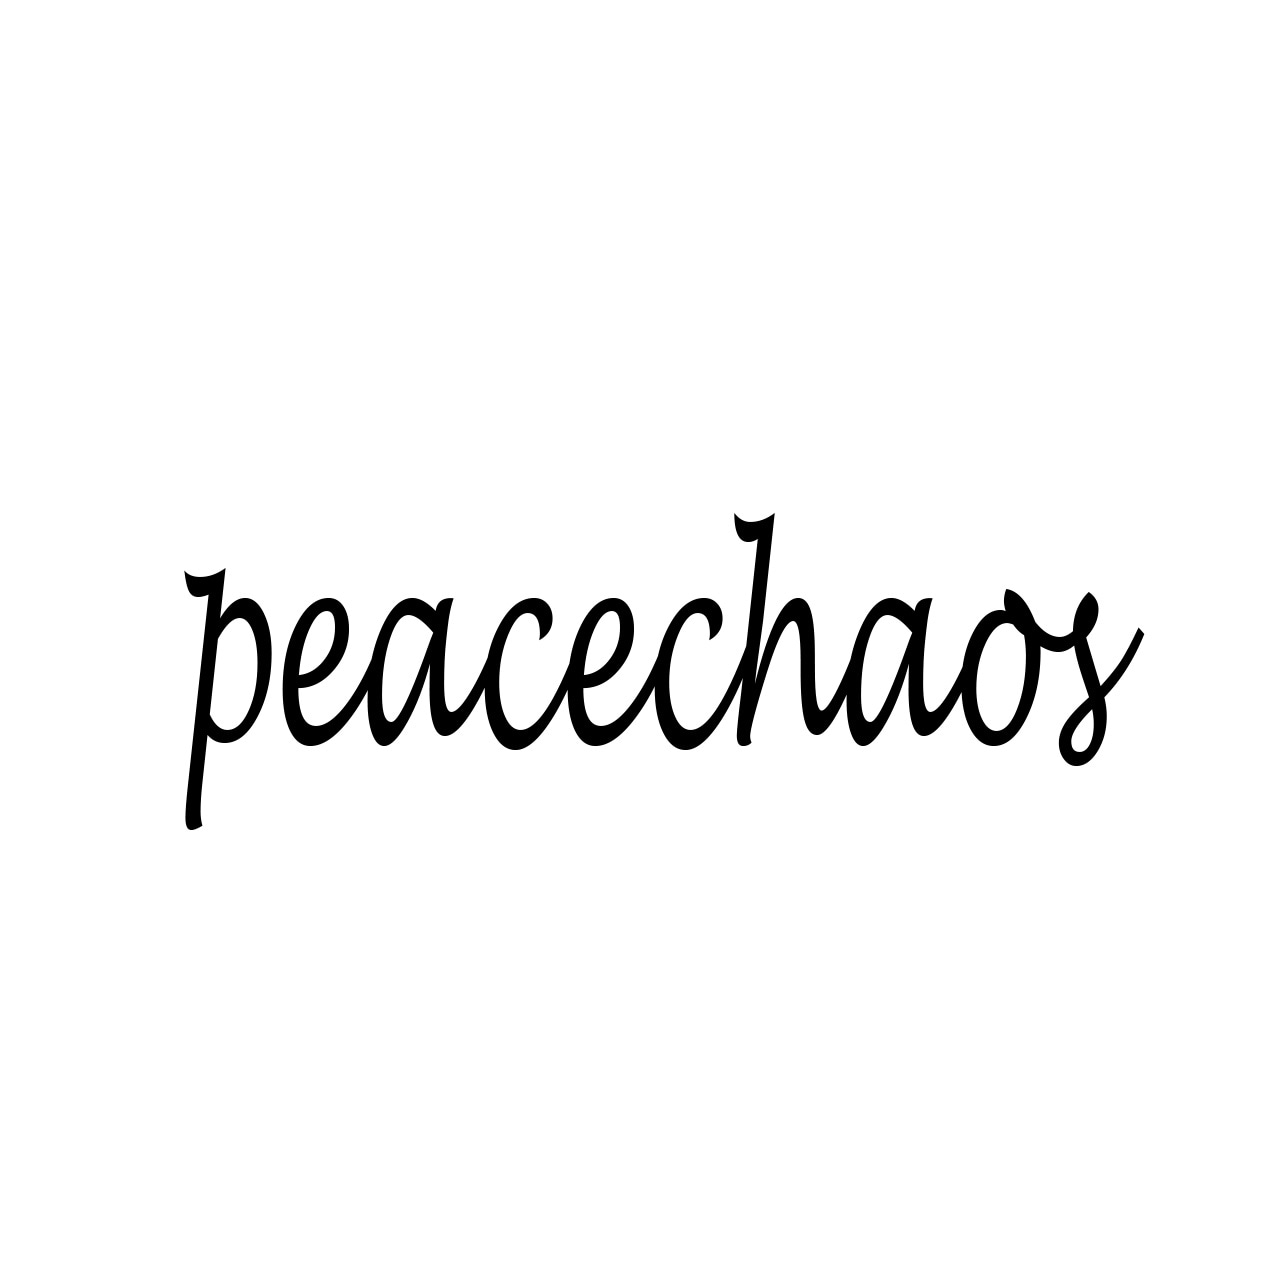 Peacechaos promo codes